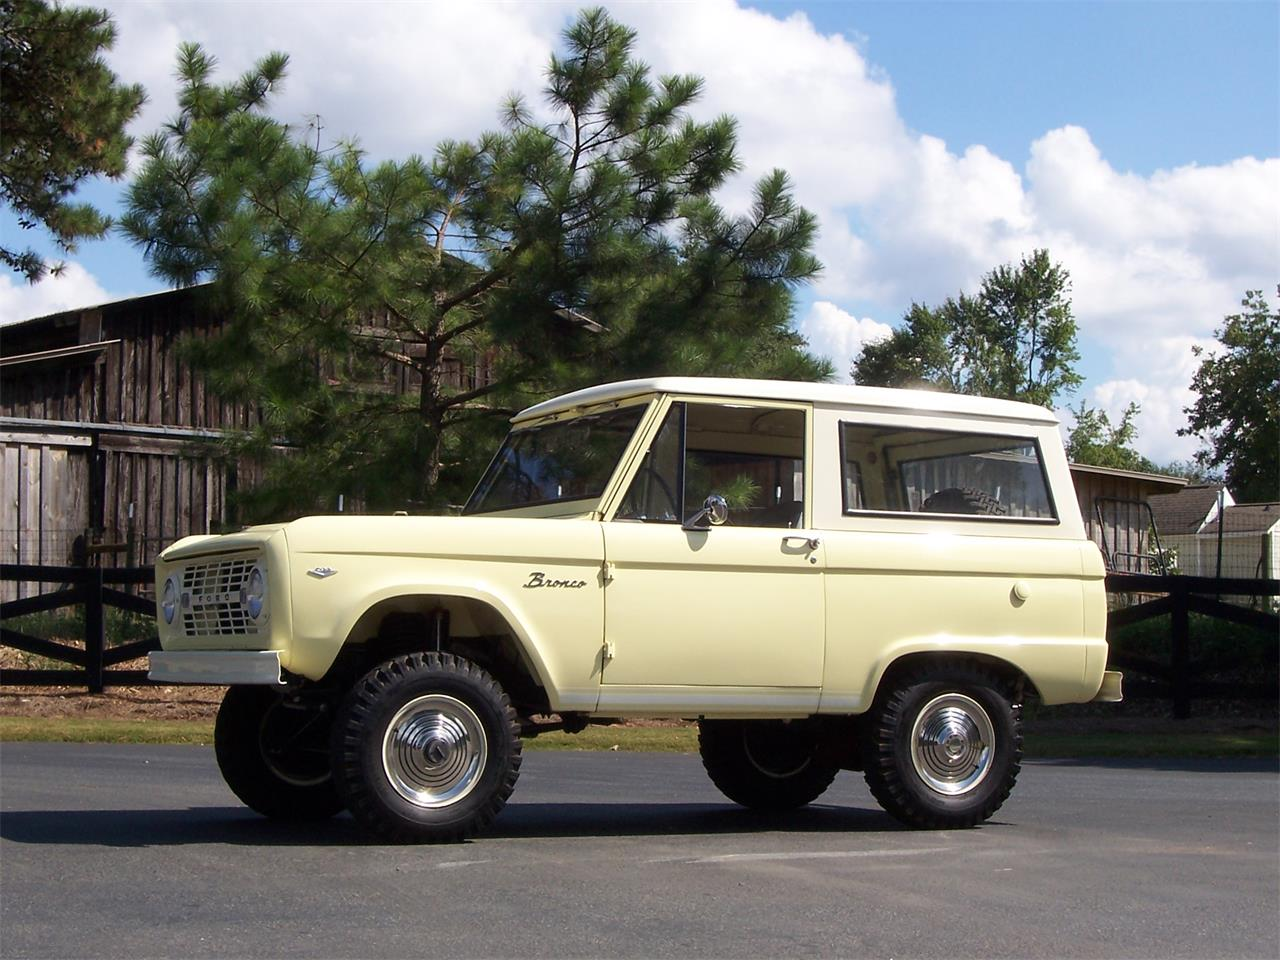 1966 Ford Bronco for sale in Alpharetta, GA – photo 30